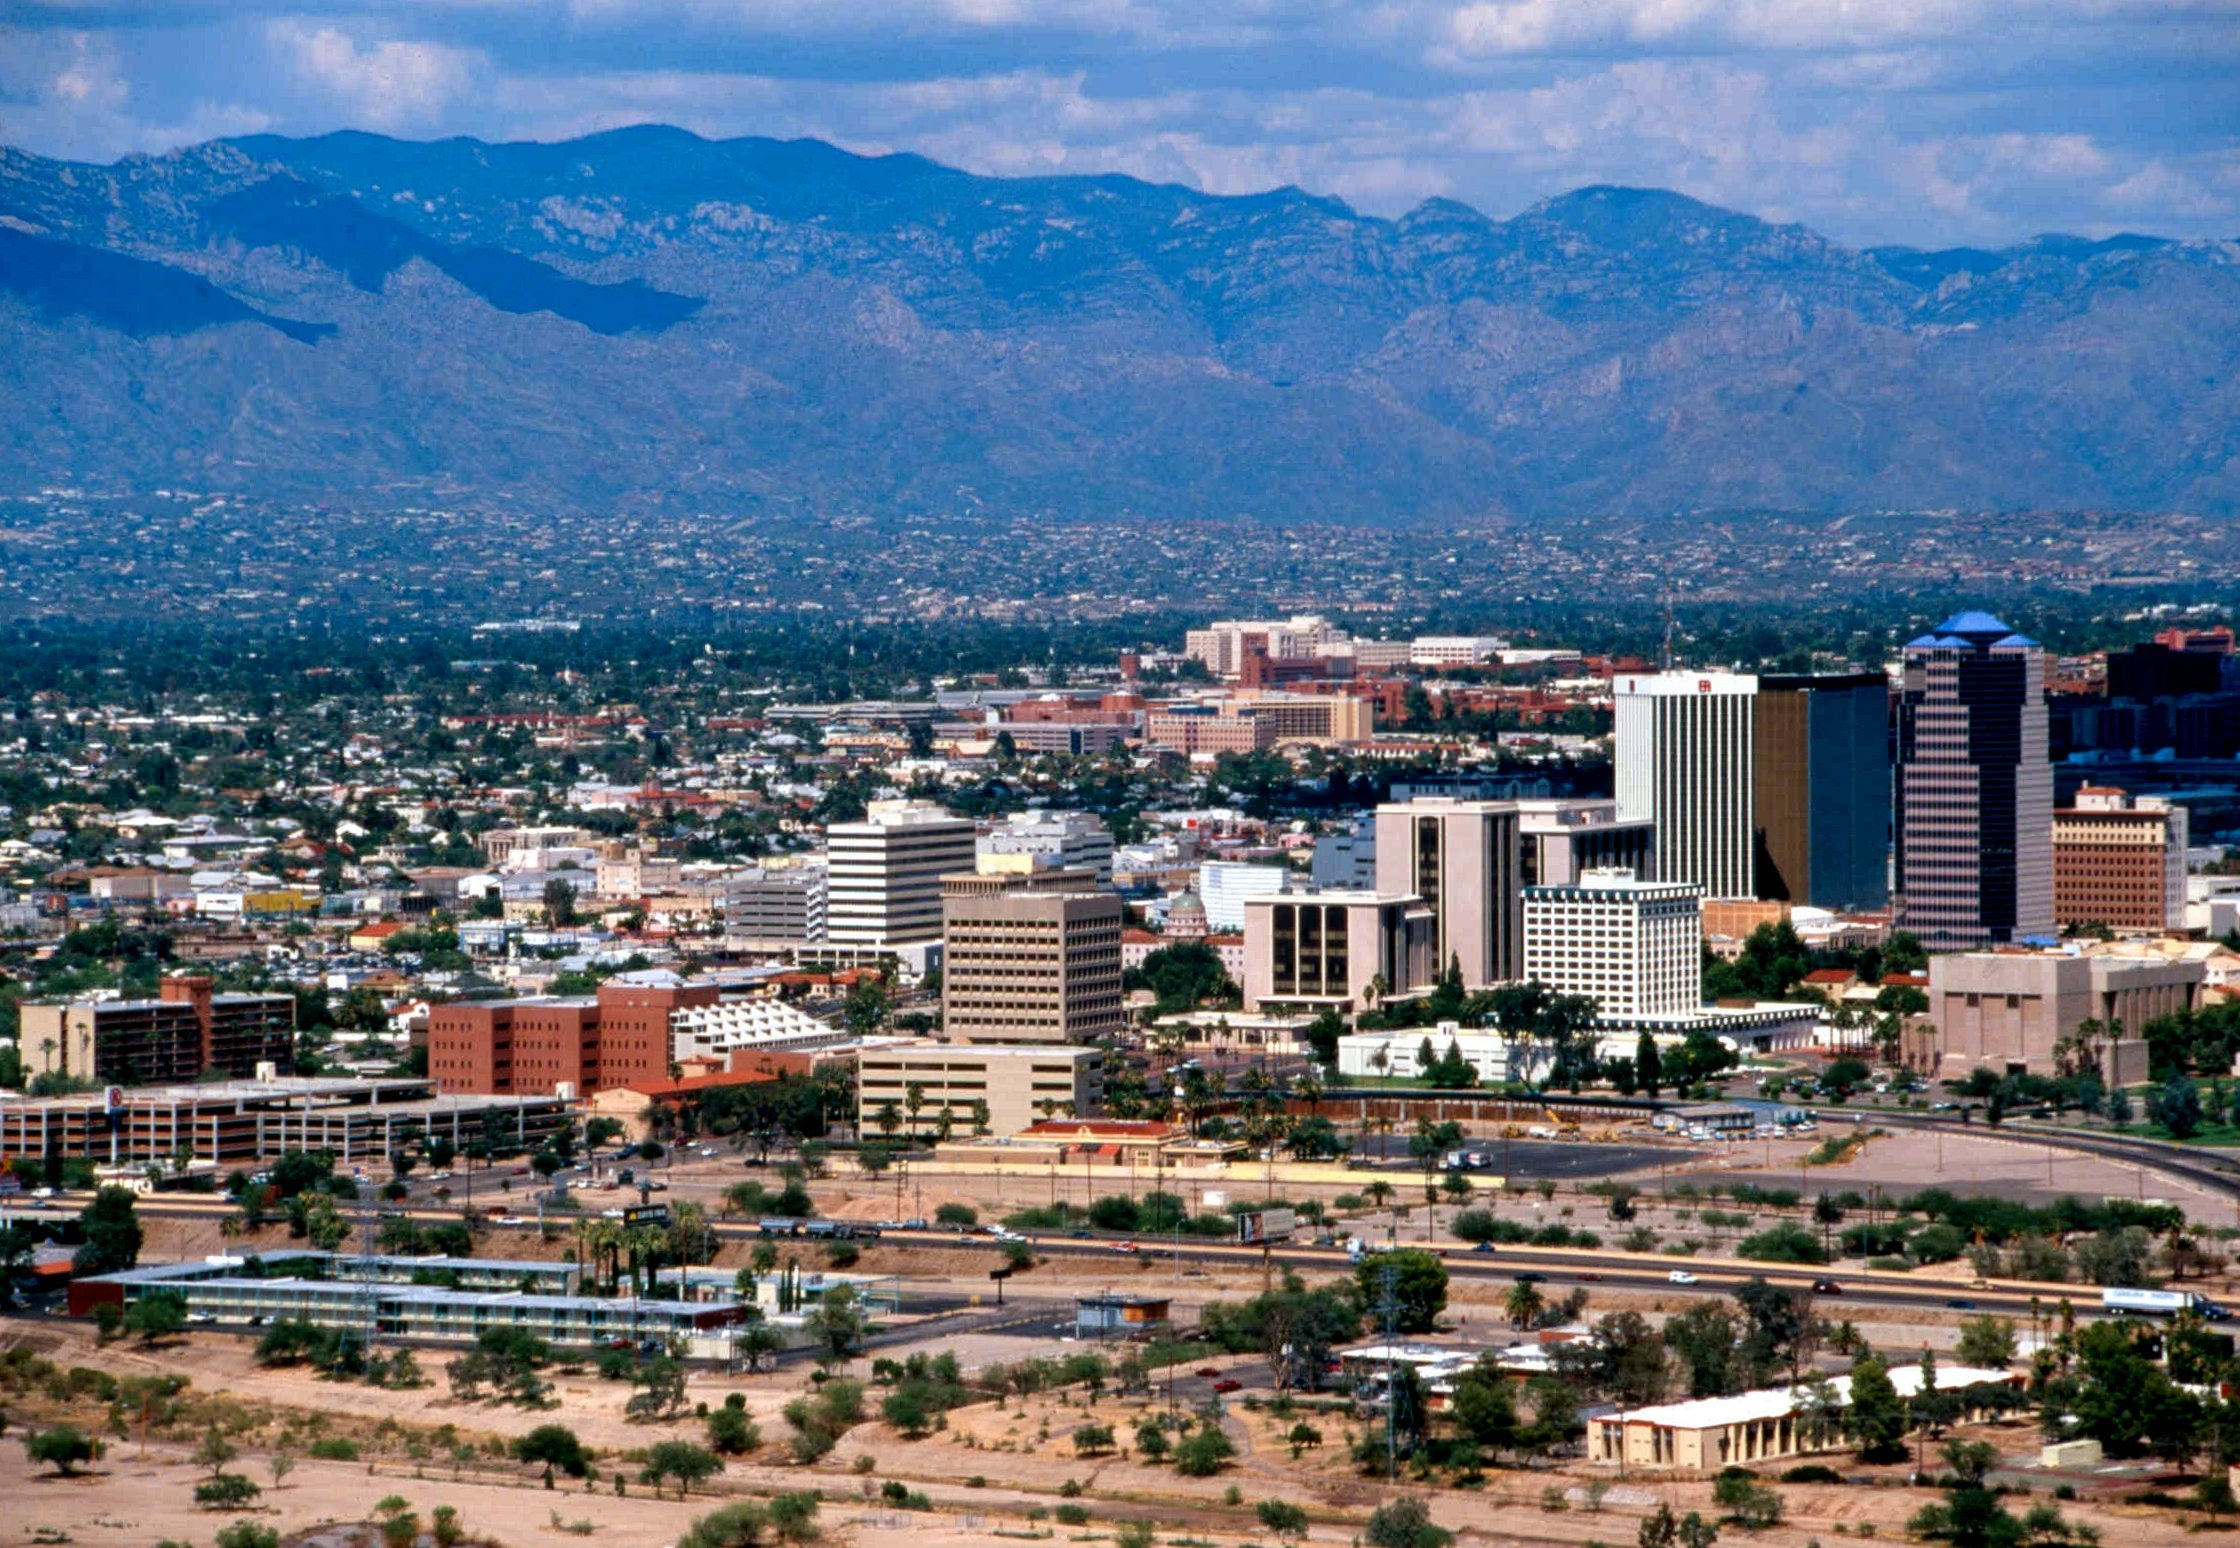 The University of Arizona, Tucson situated in the southwest US.